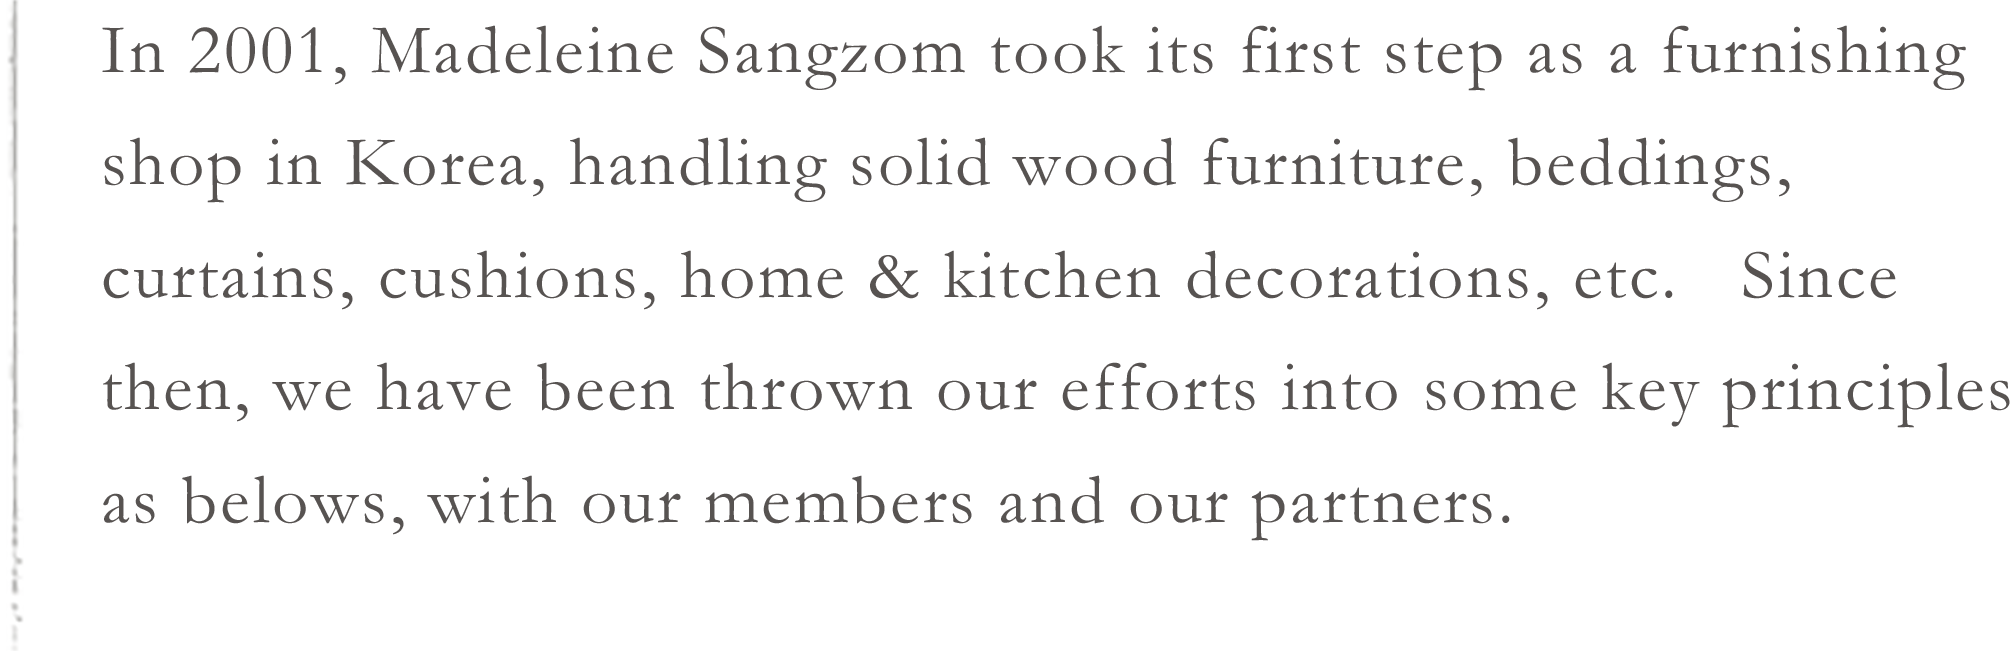 In 2001, Madeleine Sangzom took its first step as a furnishing shop in Korea, handling solid wood furniture, beddings, curtains, cushions, home & kitchen decorations, etc.   Since then, we have been thrown our efforts into some key principles as belows, with our members and our partners.